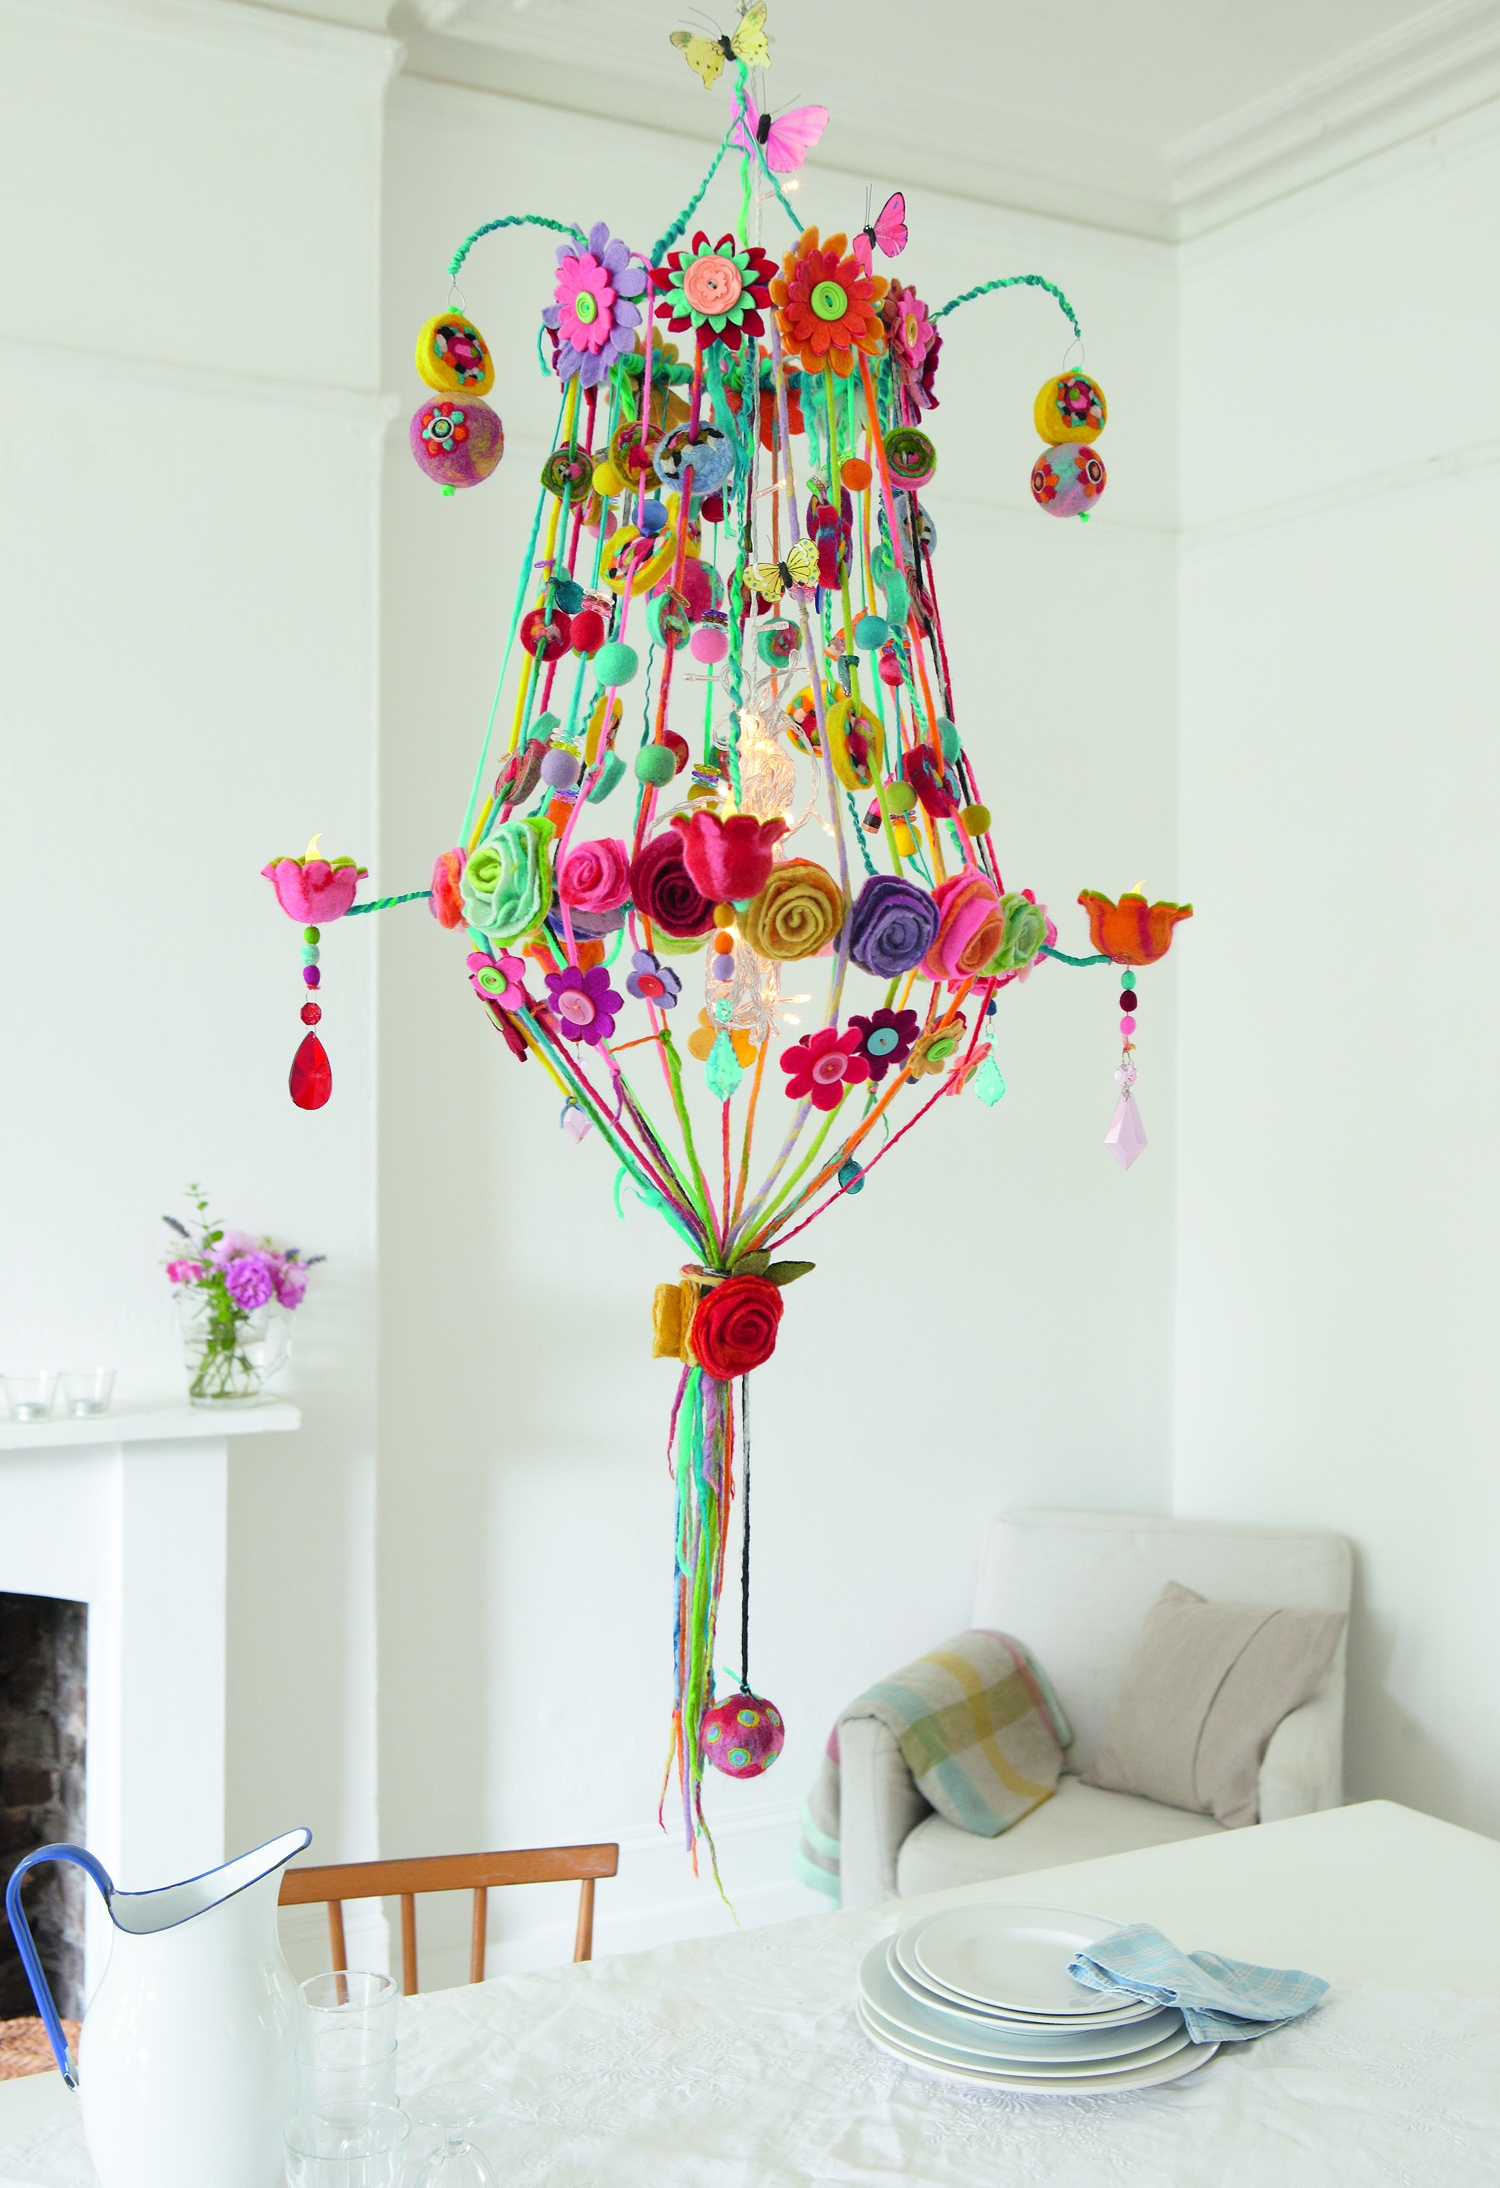 A Sculptress Of Felt From Penguins Purses To Ostentatious Regarding Colourful Chandeliers (Image 3 of 15)